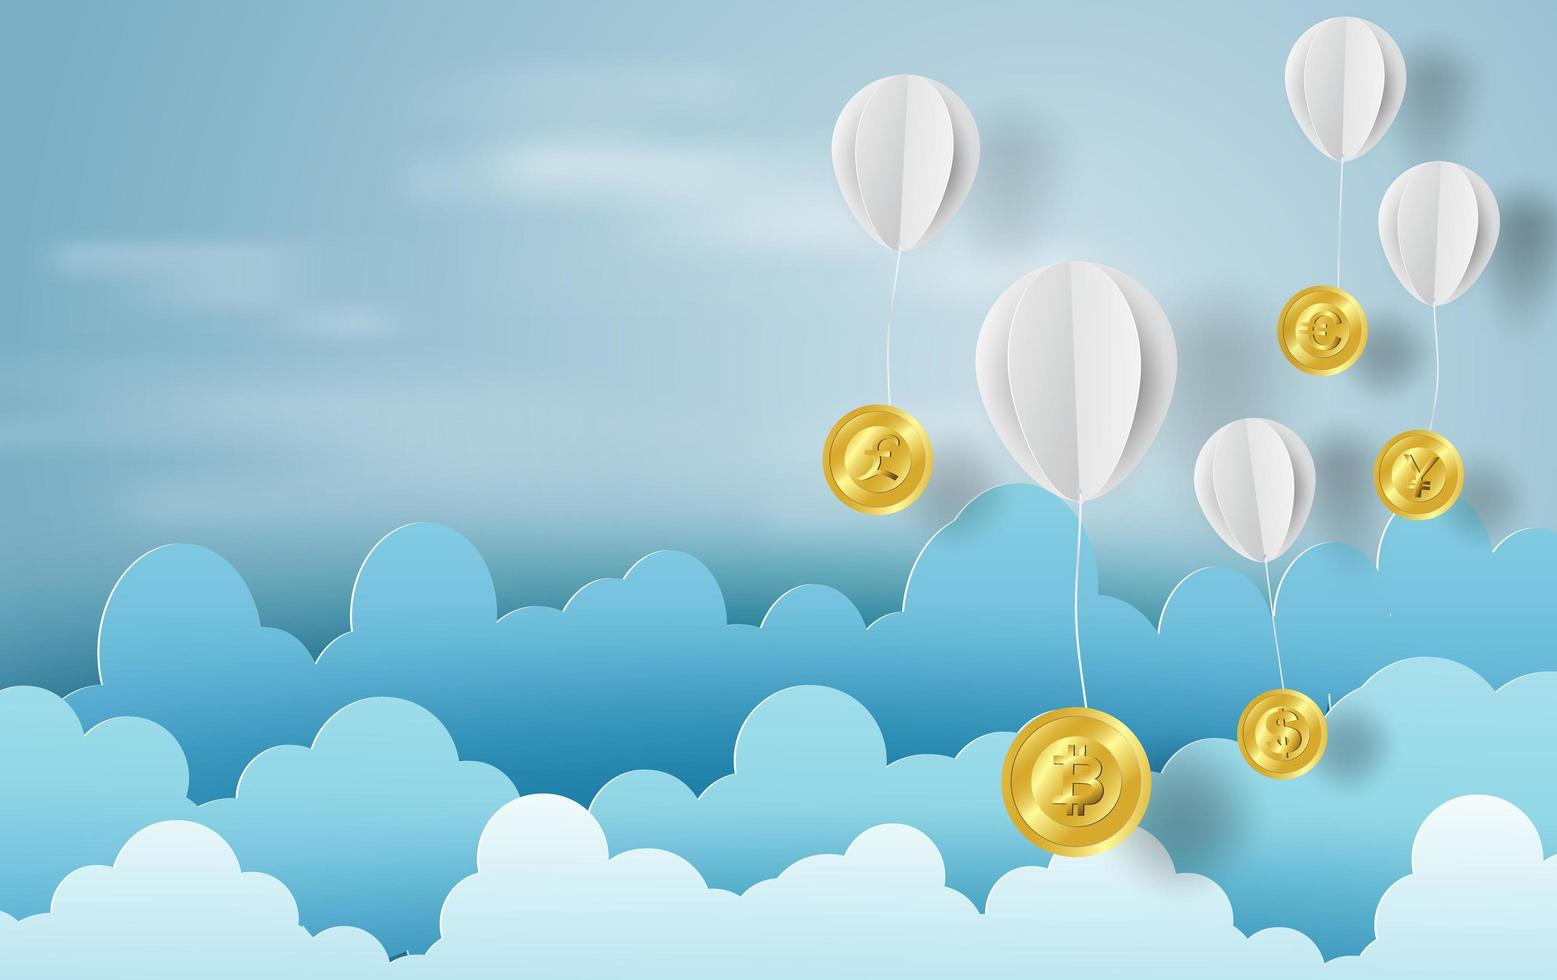 Paper art of balloons as clouds on blue sky banner with bitcoins vector